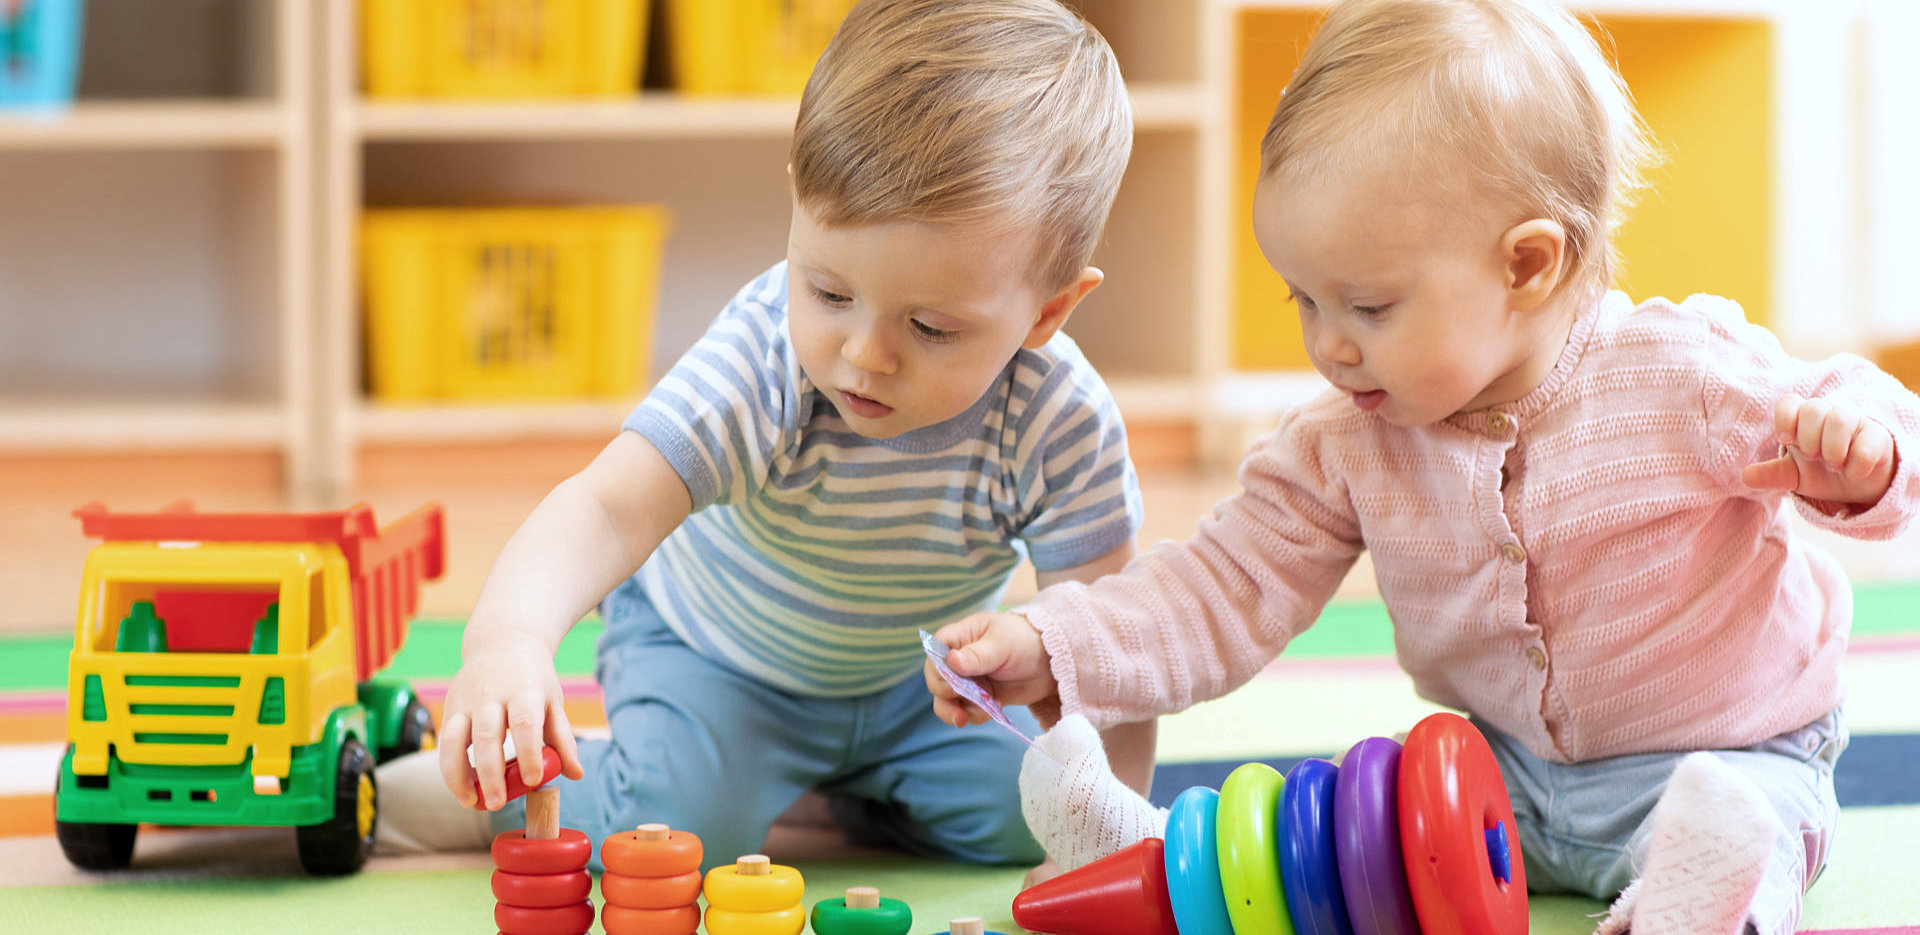 two children playing with toys